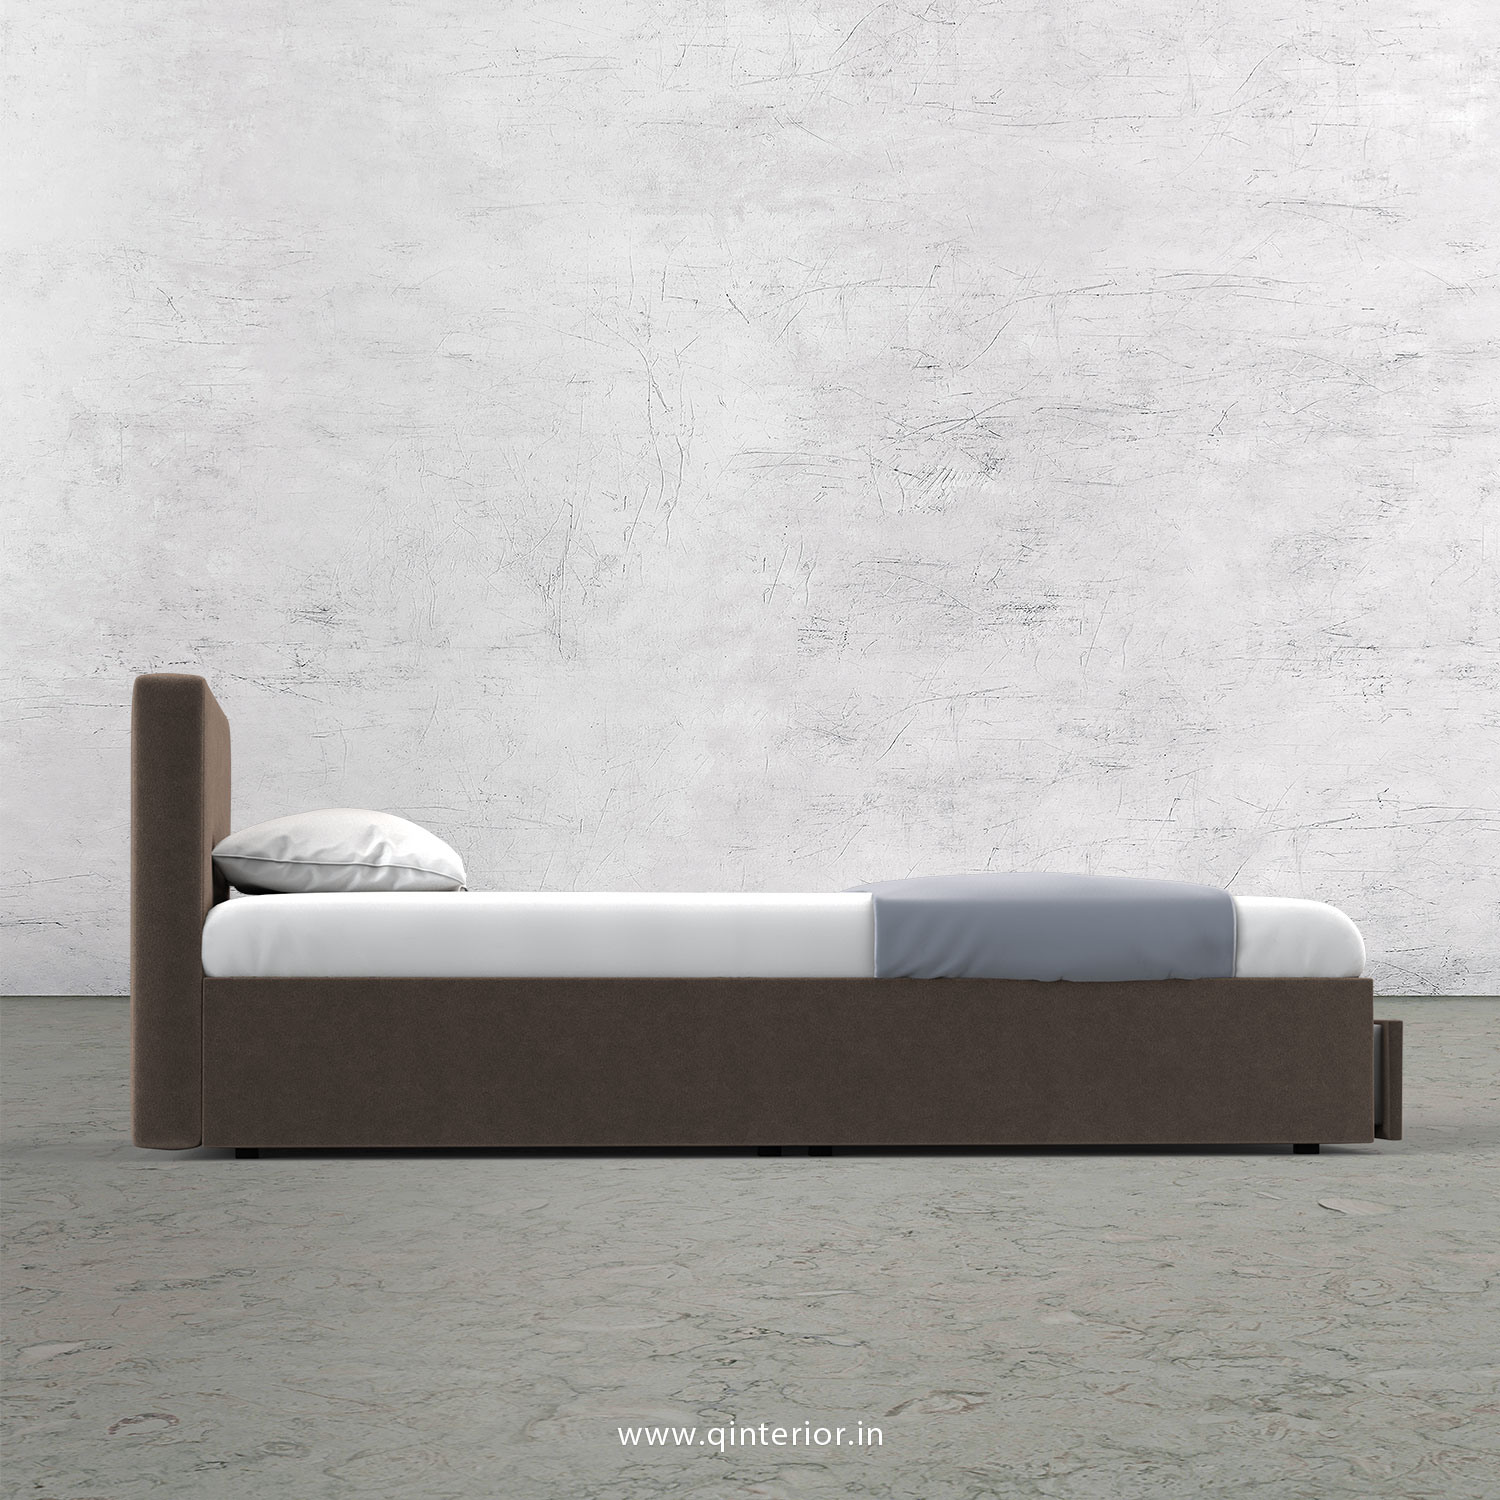 Nirvana Queen Storage Bed in Velvet Fabric - QBD001 VL02